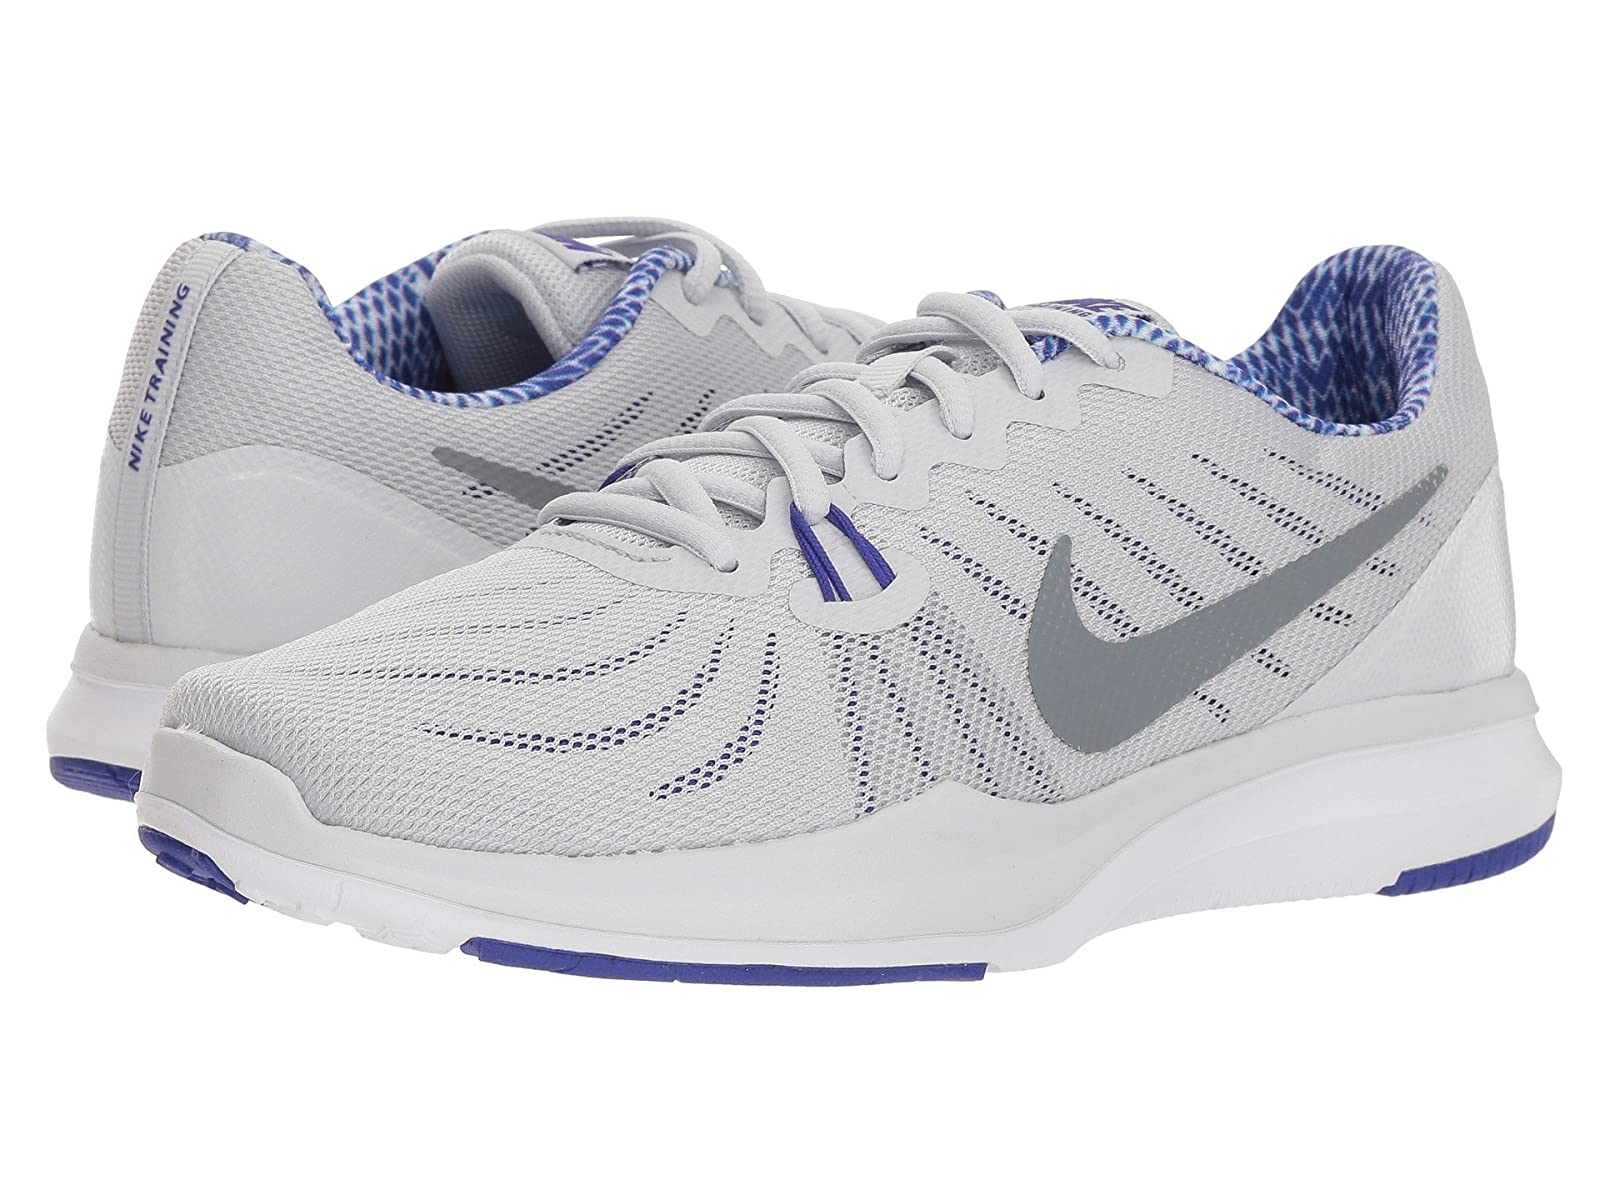 Nike In-Season 7Cheap and distinctive eye-catching shoes